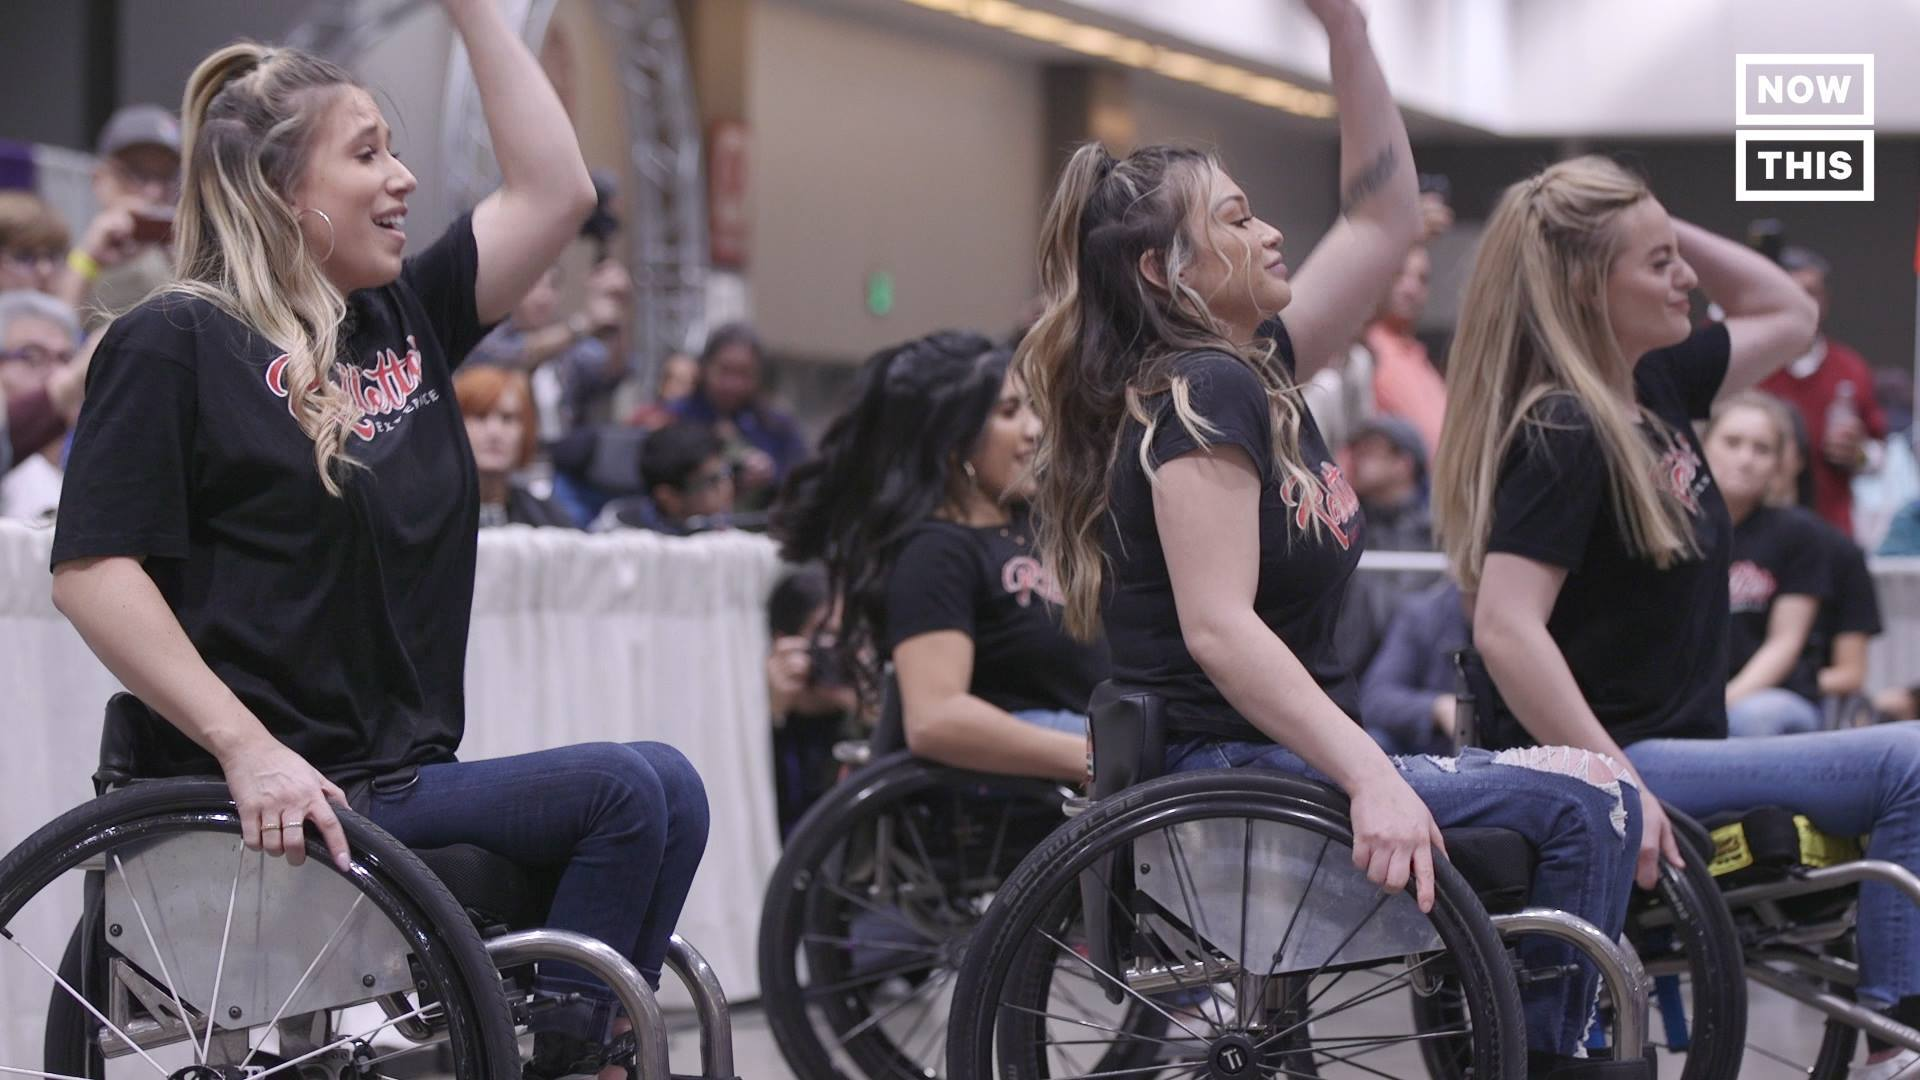 NowThis: Wheelchair Dance Troupe Inspires People with Disabilities